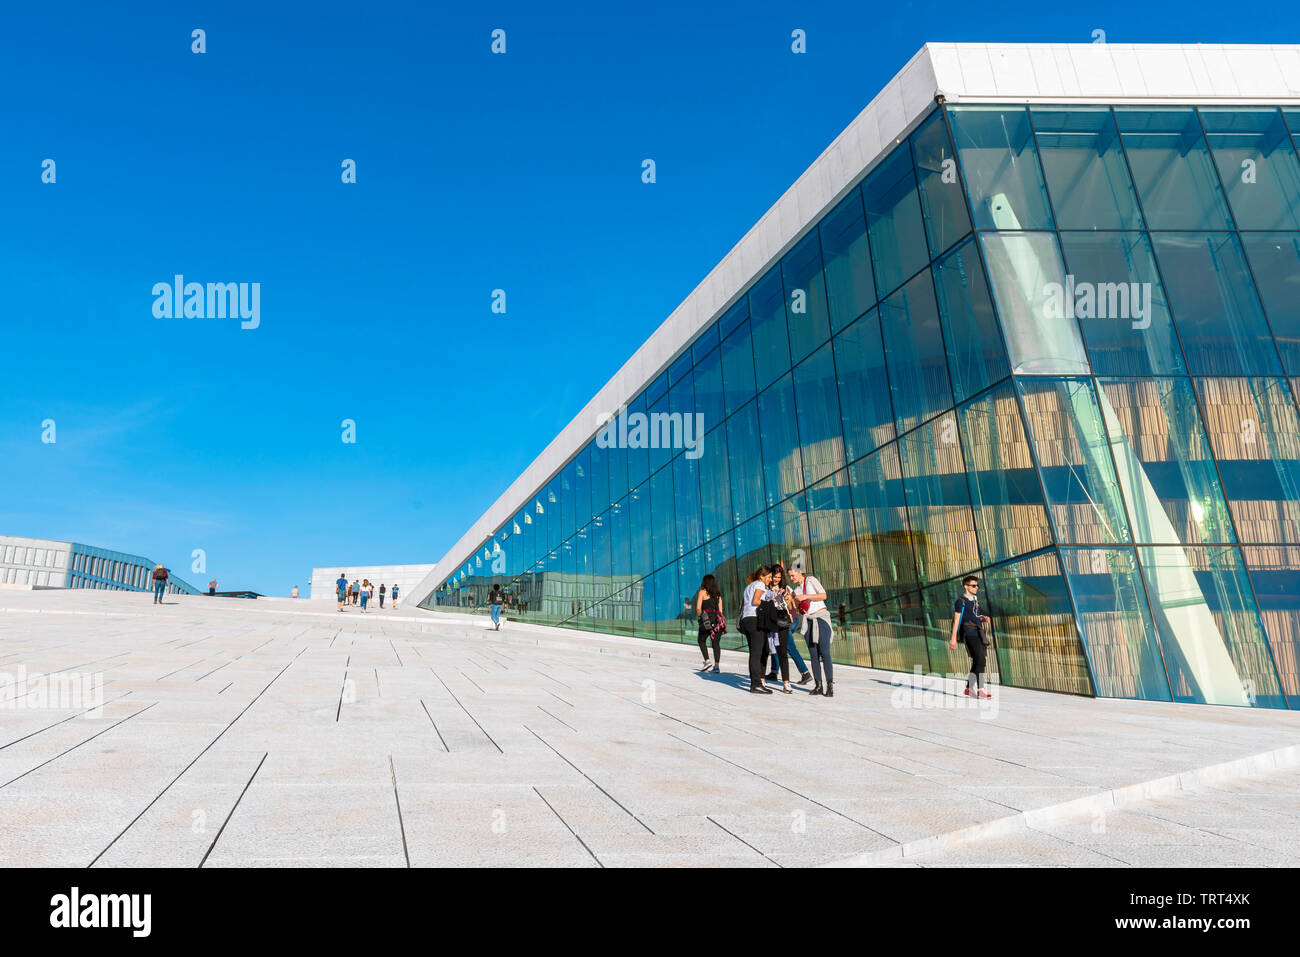 Opera House Oslo, view in summer of young people standing on the vast access ramp leading to the roof of the Oslo Opera House, Norway. Stock Photo